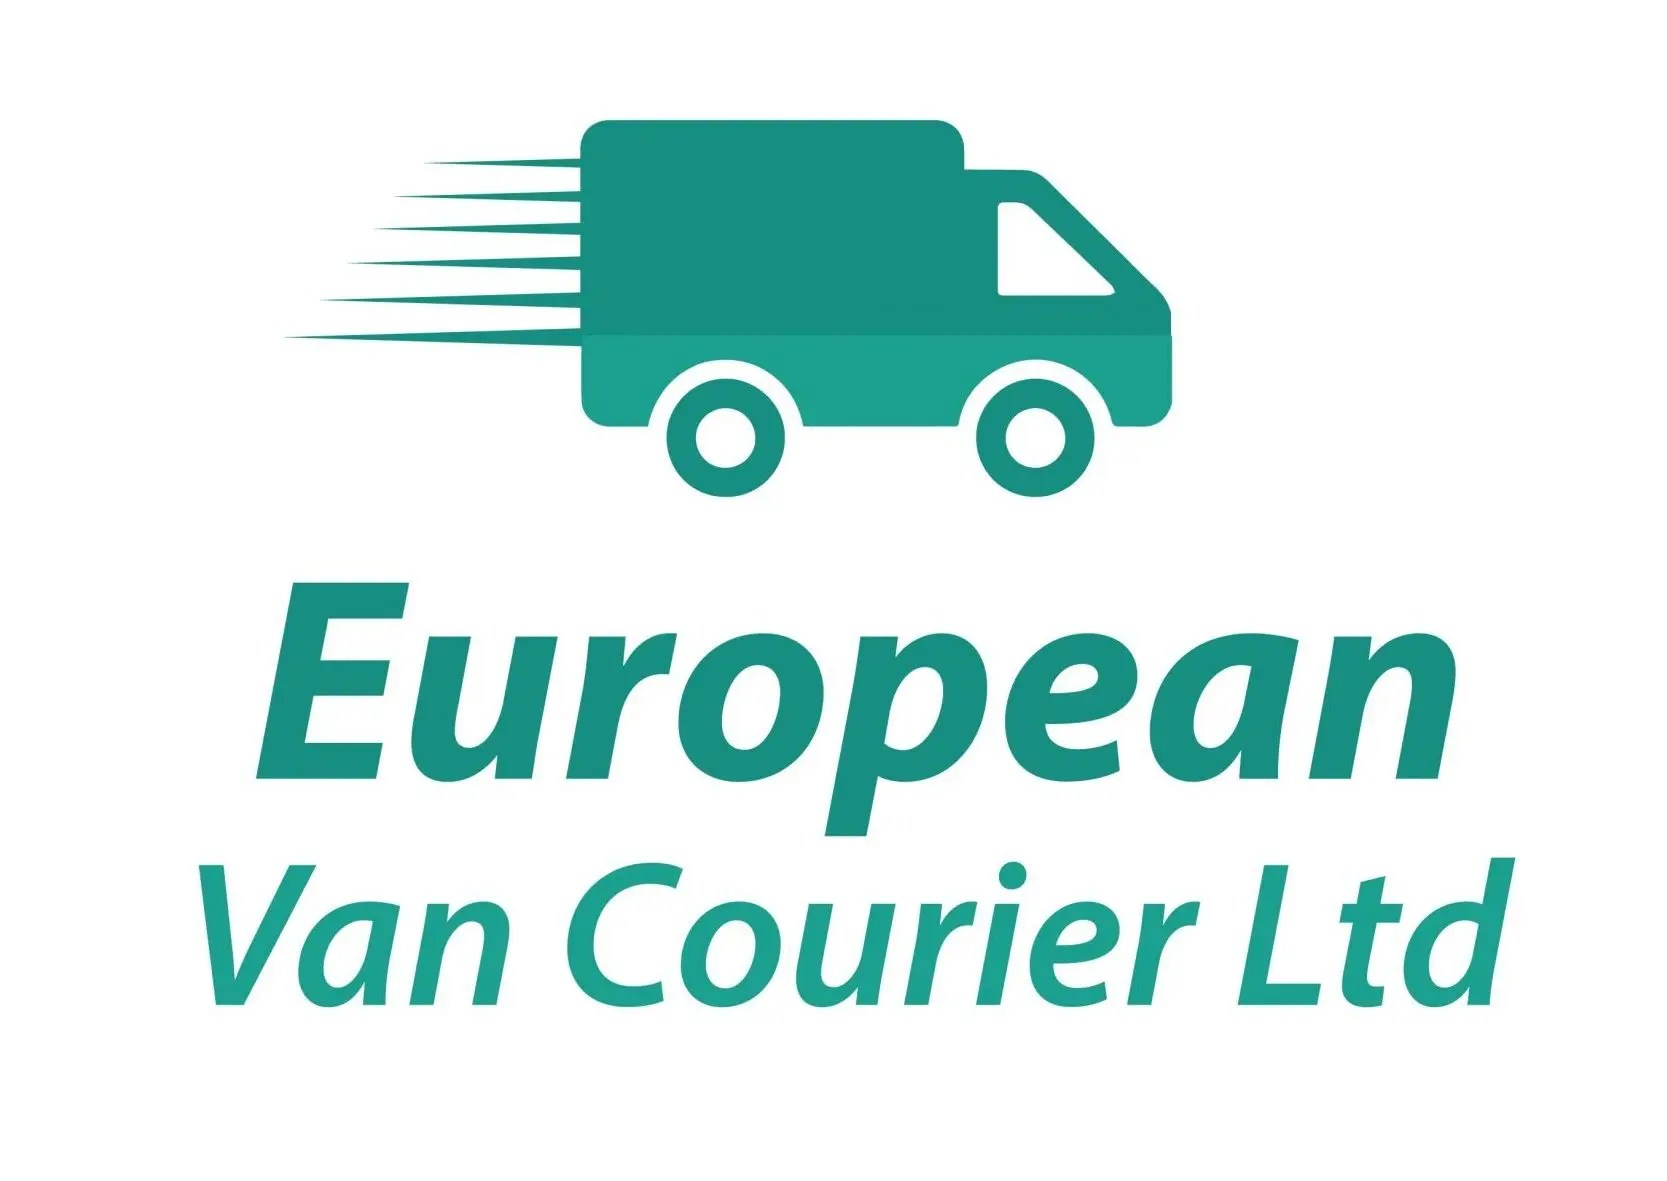 European Van Courier Ltd